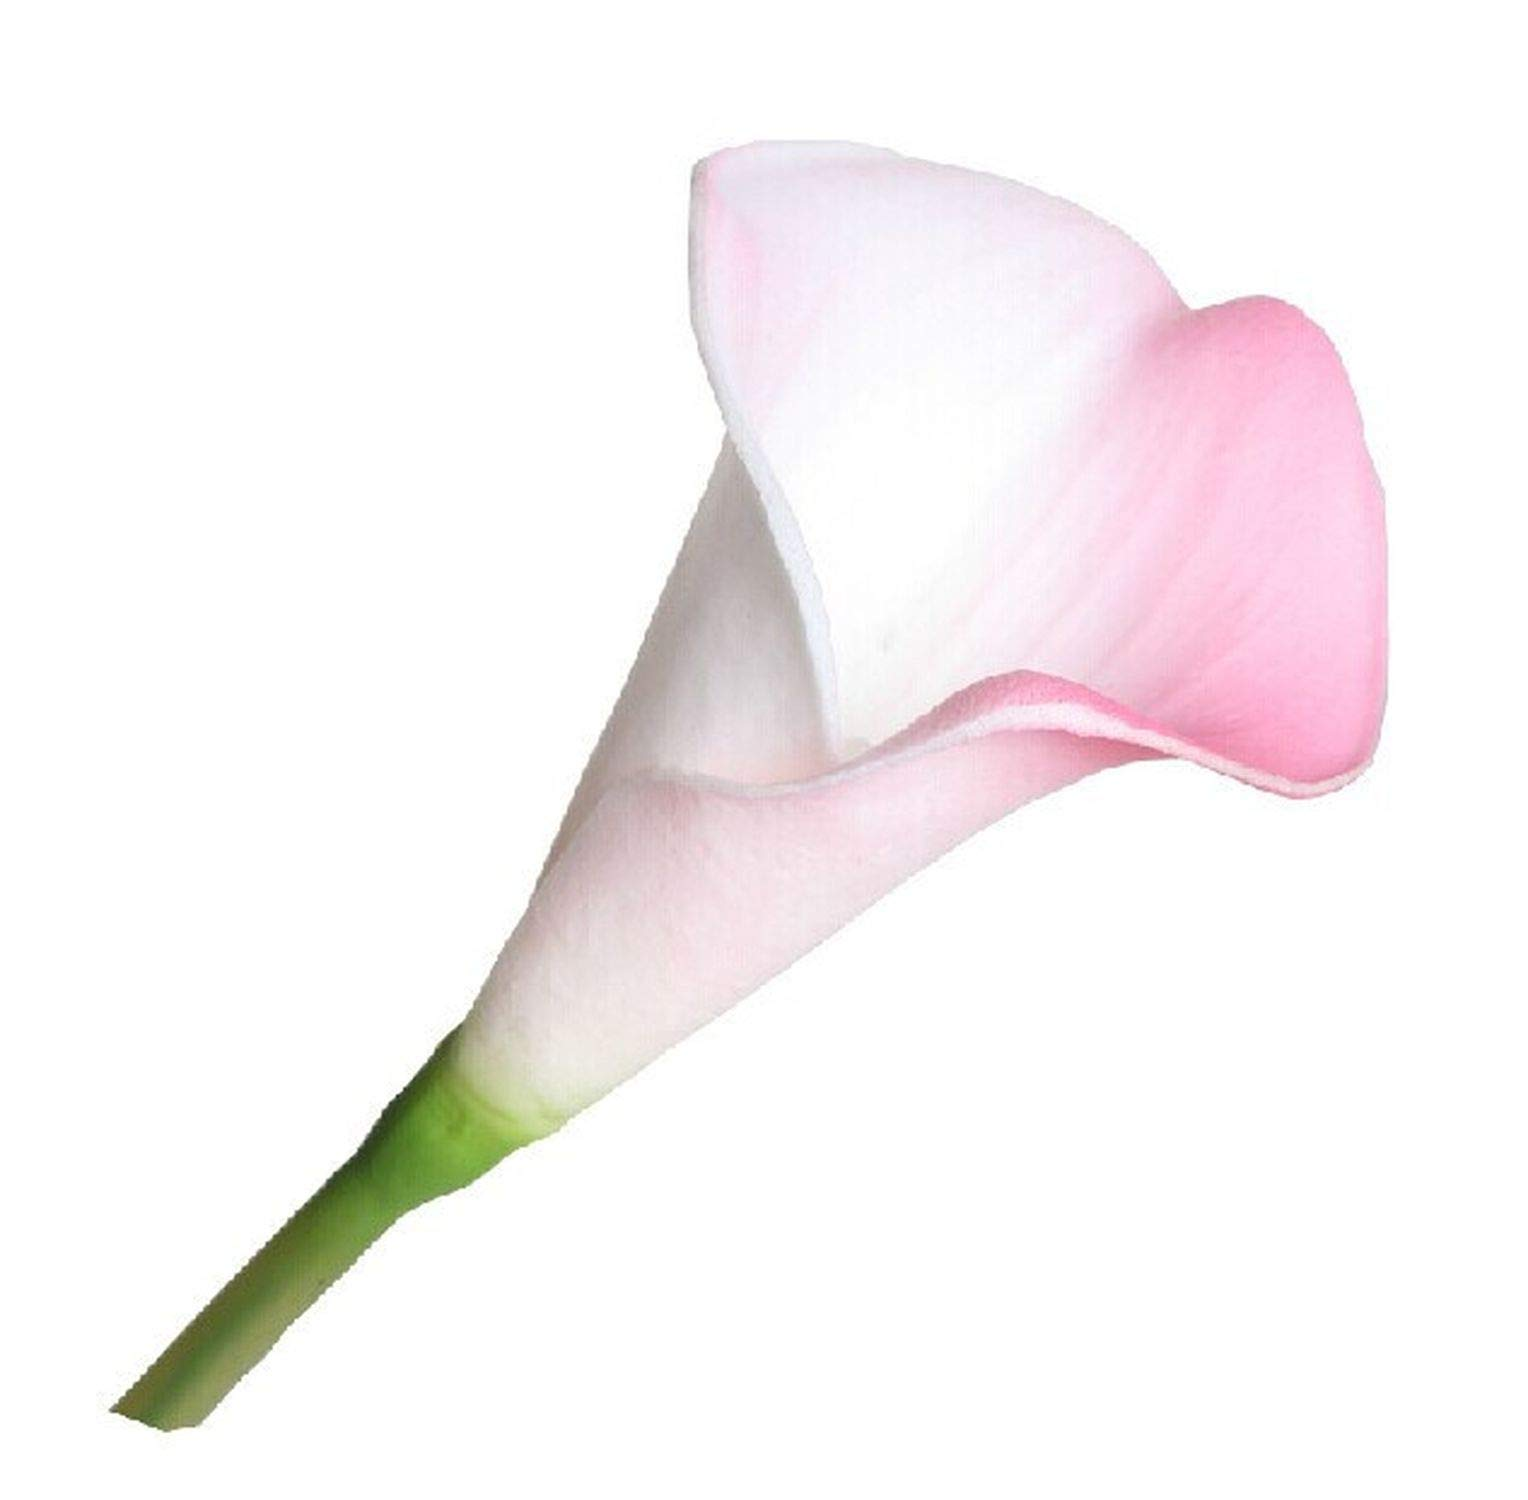 33Pcs Pink Mini Calla Lily 14'' Mini Calla Lily Wedding Bride Bouquet Latex Real Touch Flower Pink Bunch Home Decor,33 Pcs Flowers by Vicky-Flower